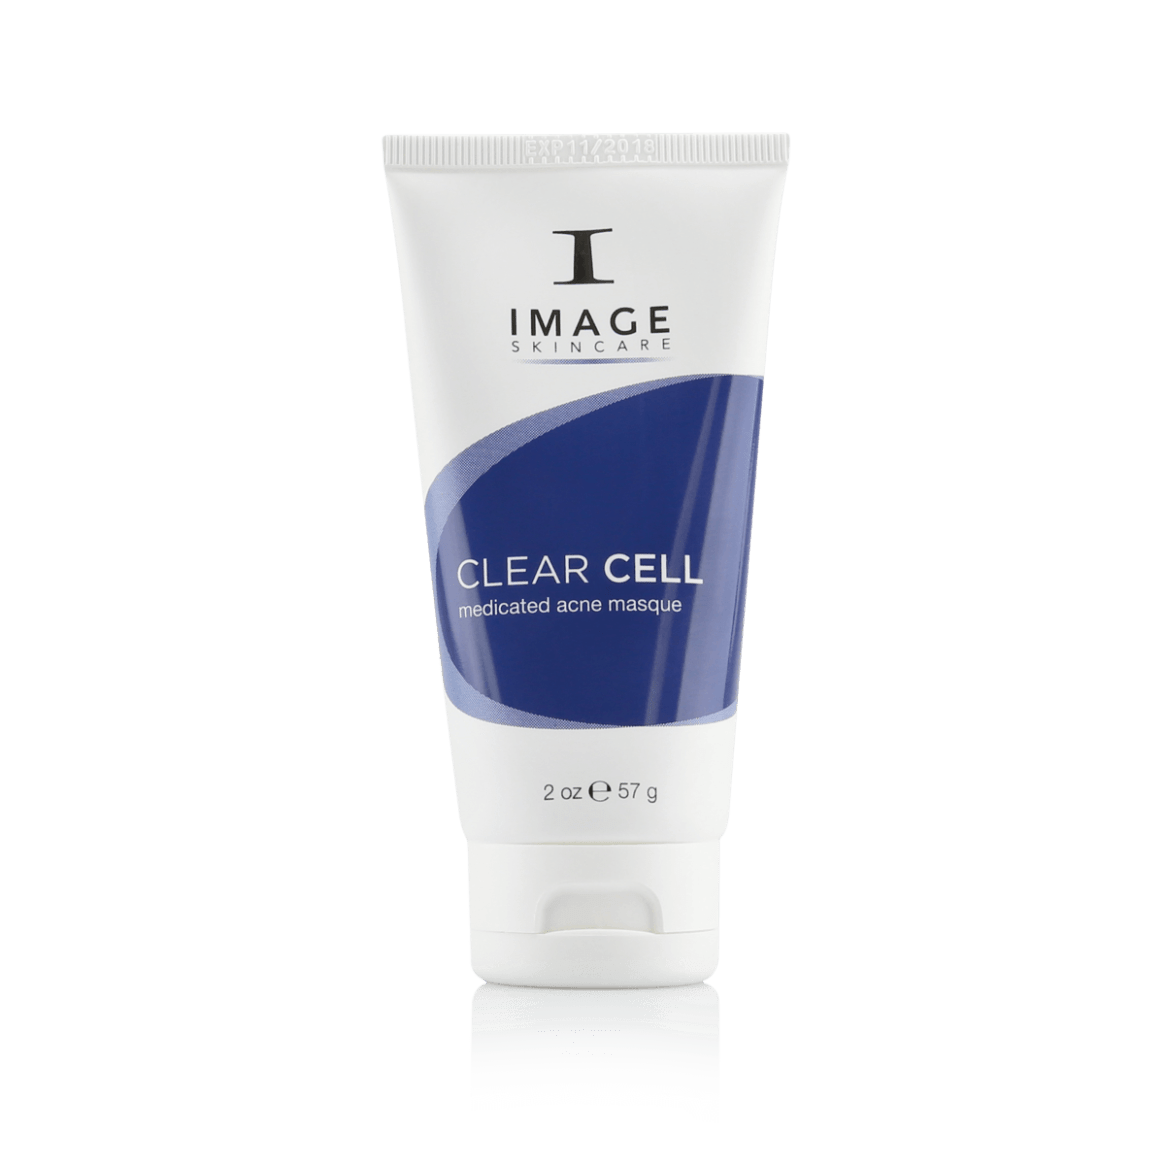 IMAGE Skincare CLEAR CELL medicated acne mask